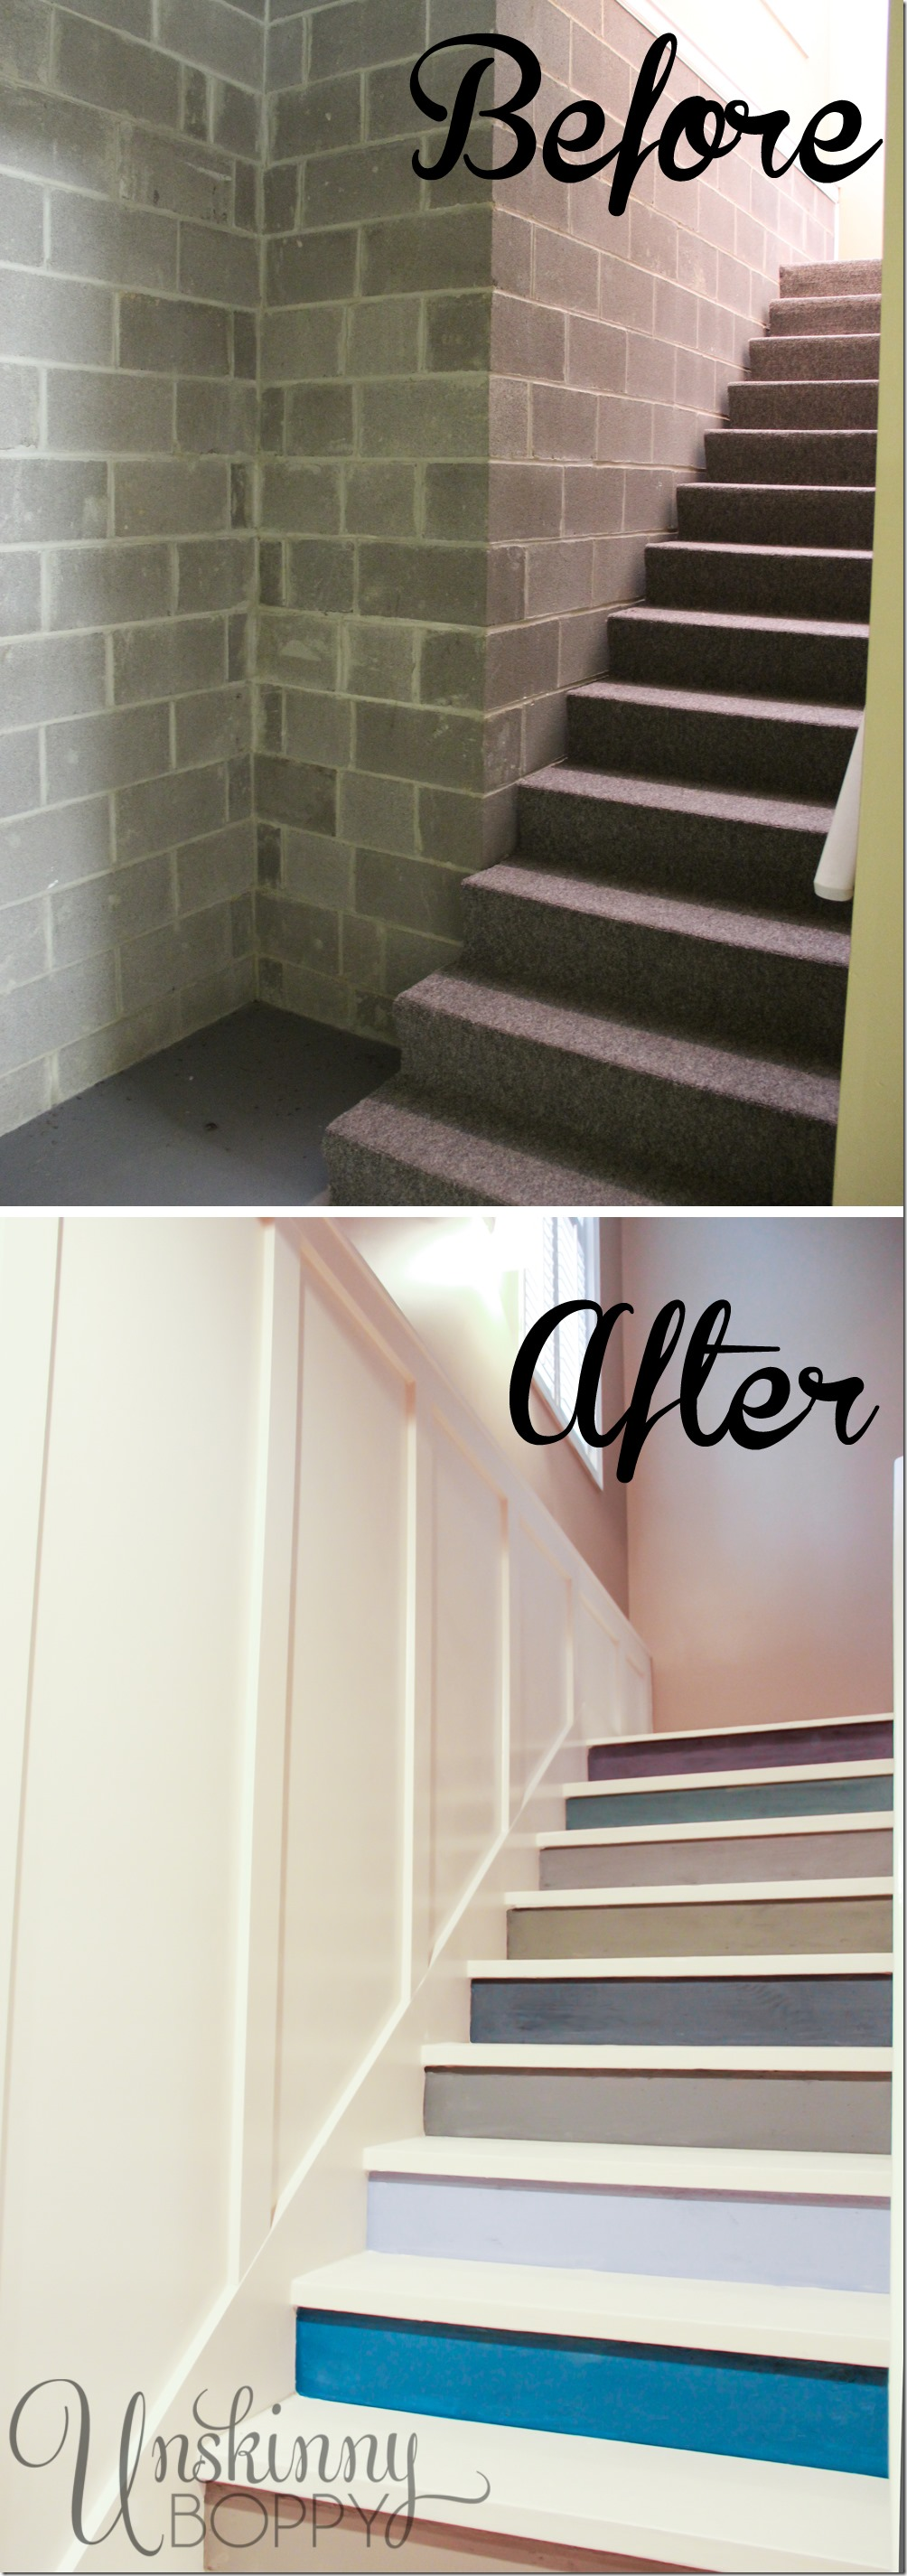 Painted Basement Steps With Board And Batten Unskinny Boppy